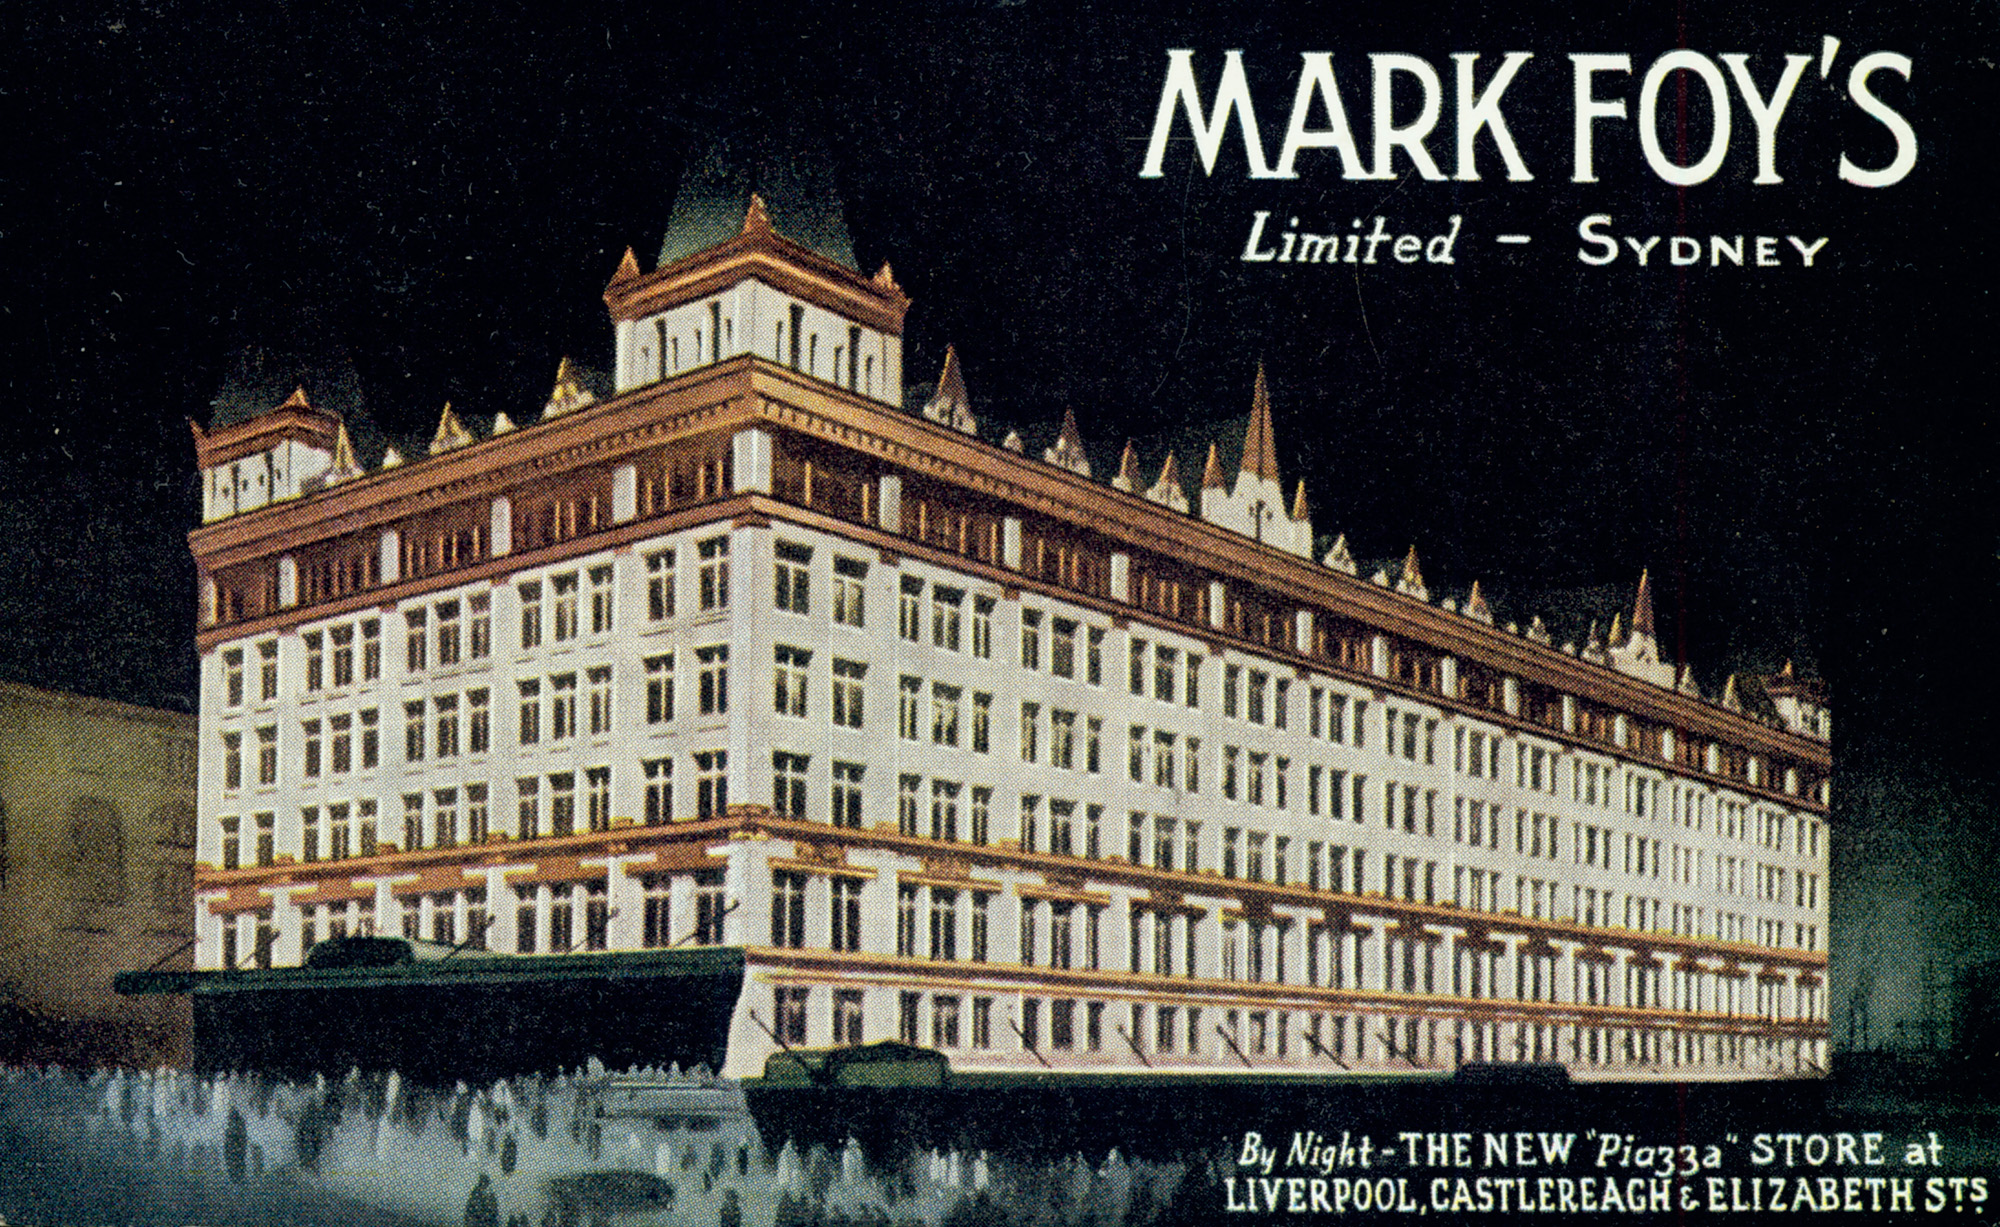 [Mark Foy's Limited, Sydney - the new 'Piazza' store at Liverpool, Castlereagh & Elizabeth Streets, by night / artist unknown